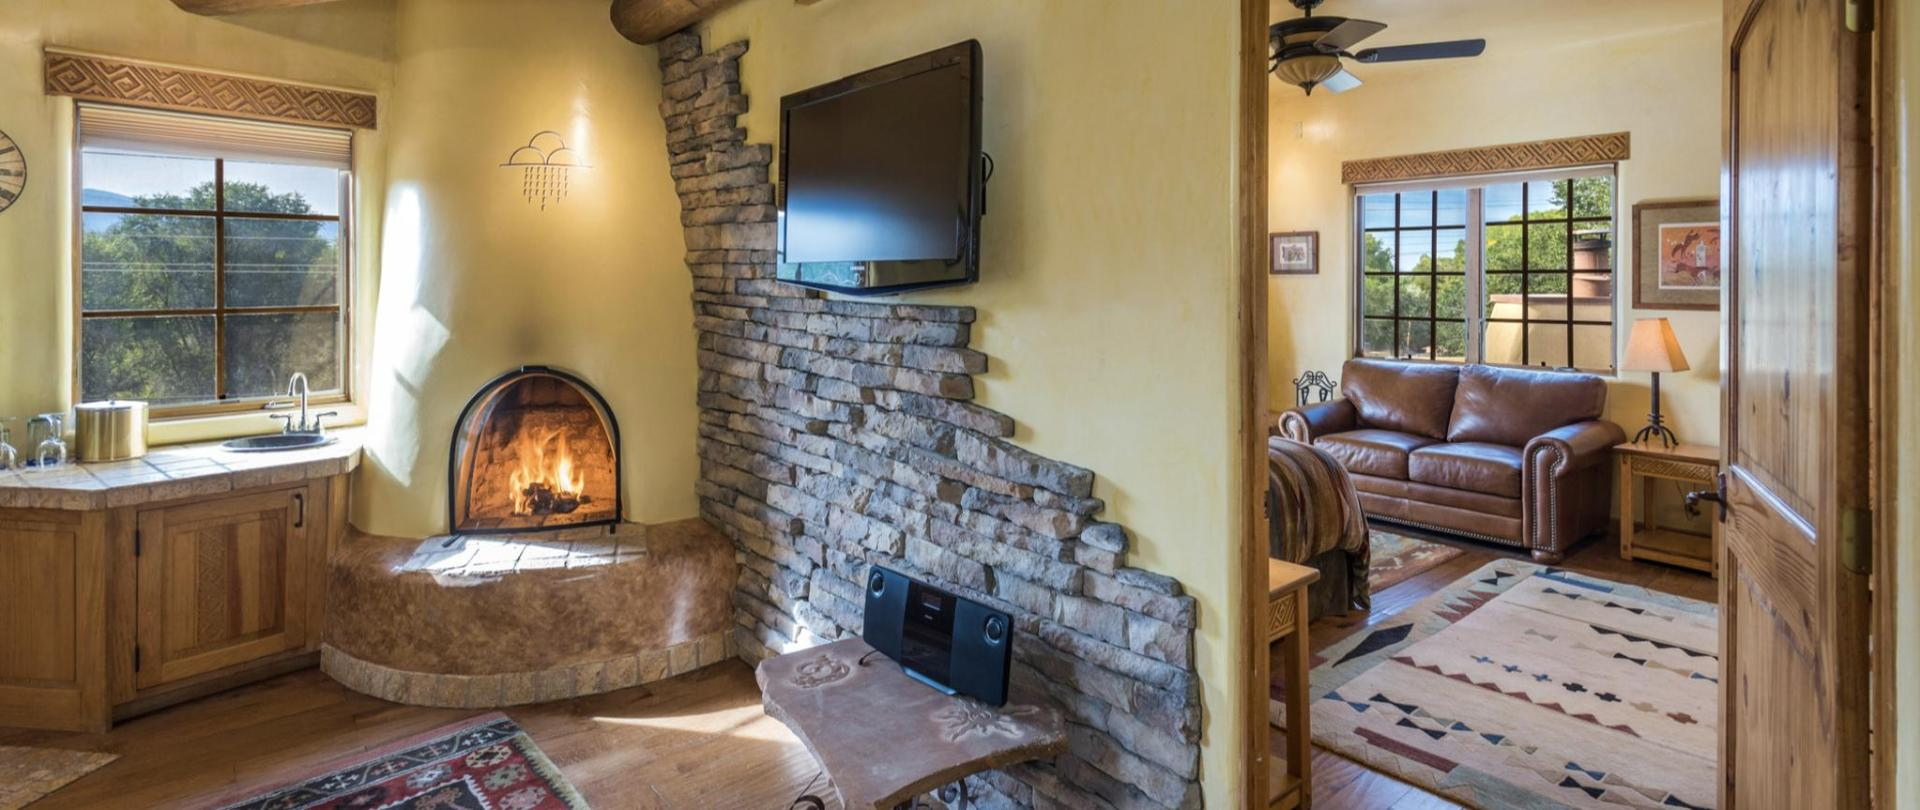 The Anasazi Penthouse Suite a two room luxury accommodation